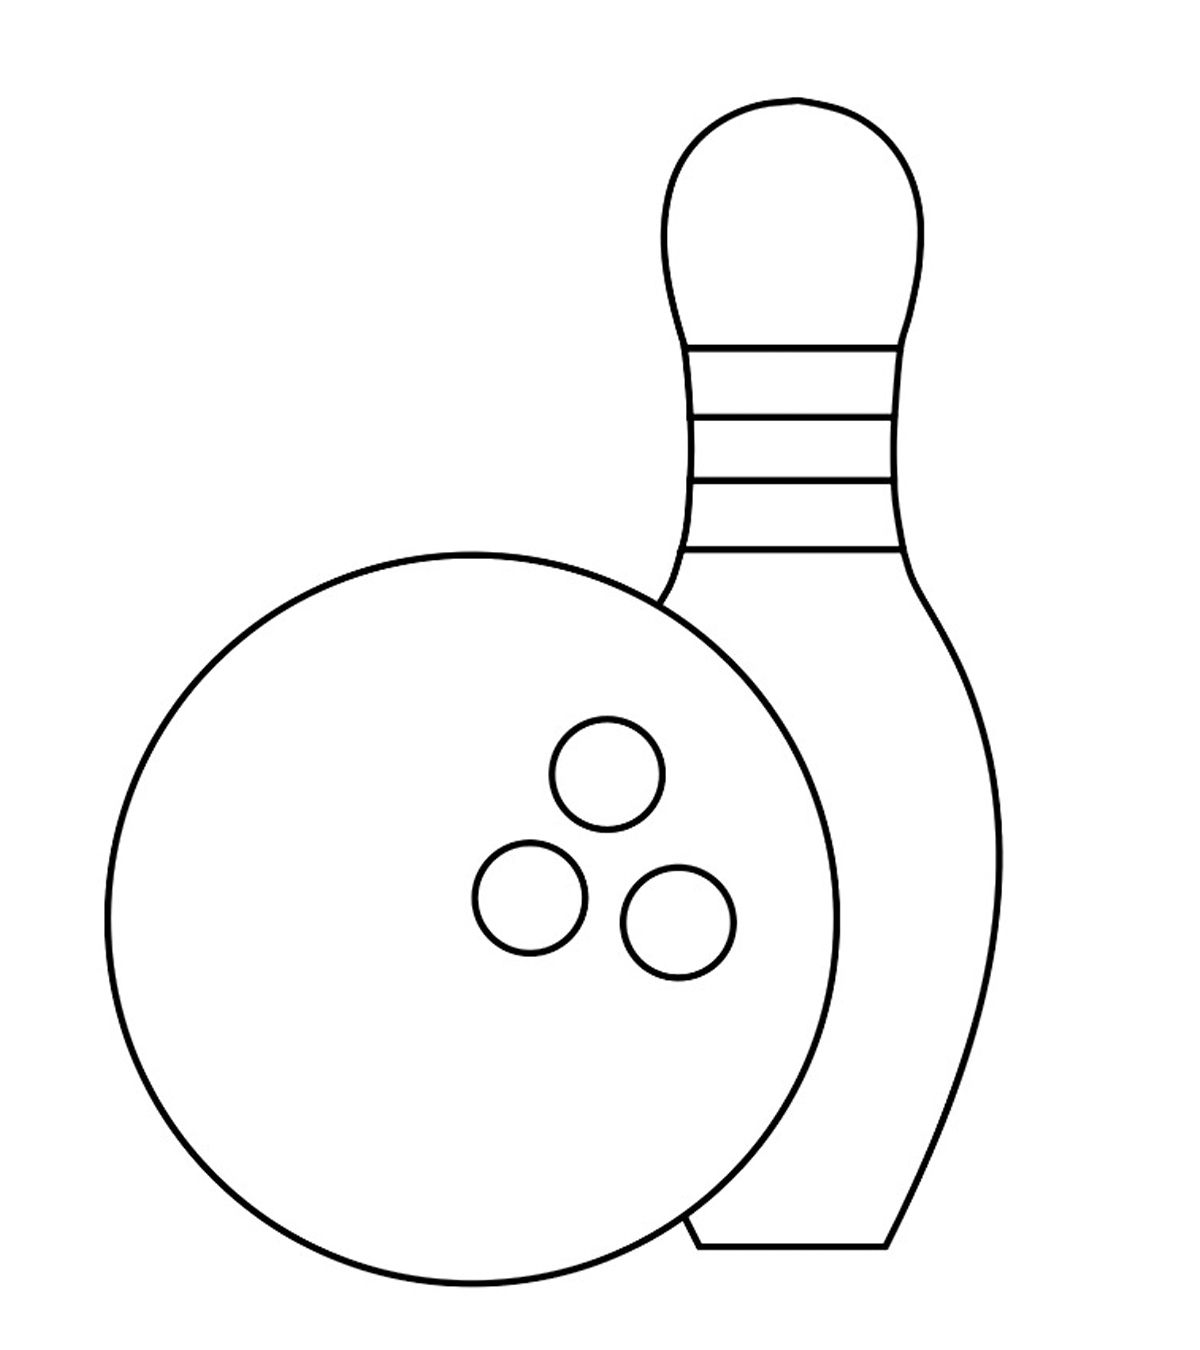 Bowling Coloring Pages Free To Color In 2020 Star Coloring Pages Coloring Pages Free Printable Coloring Pages